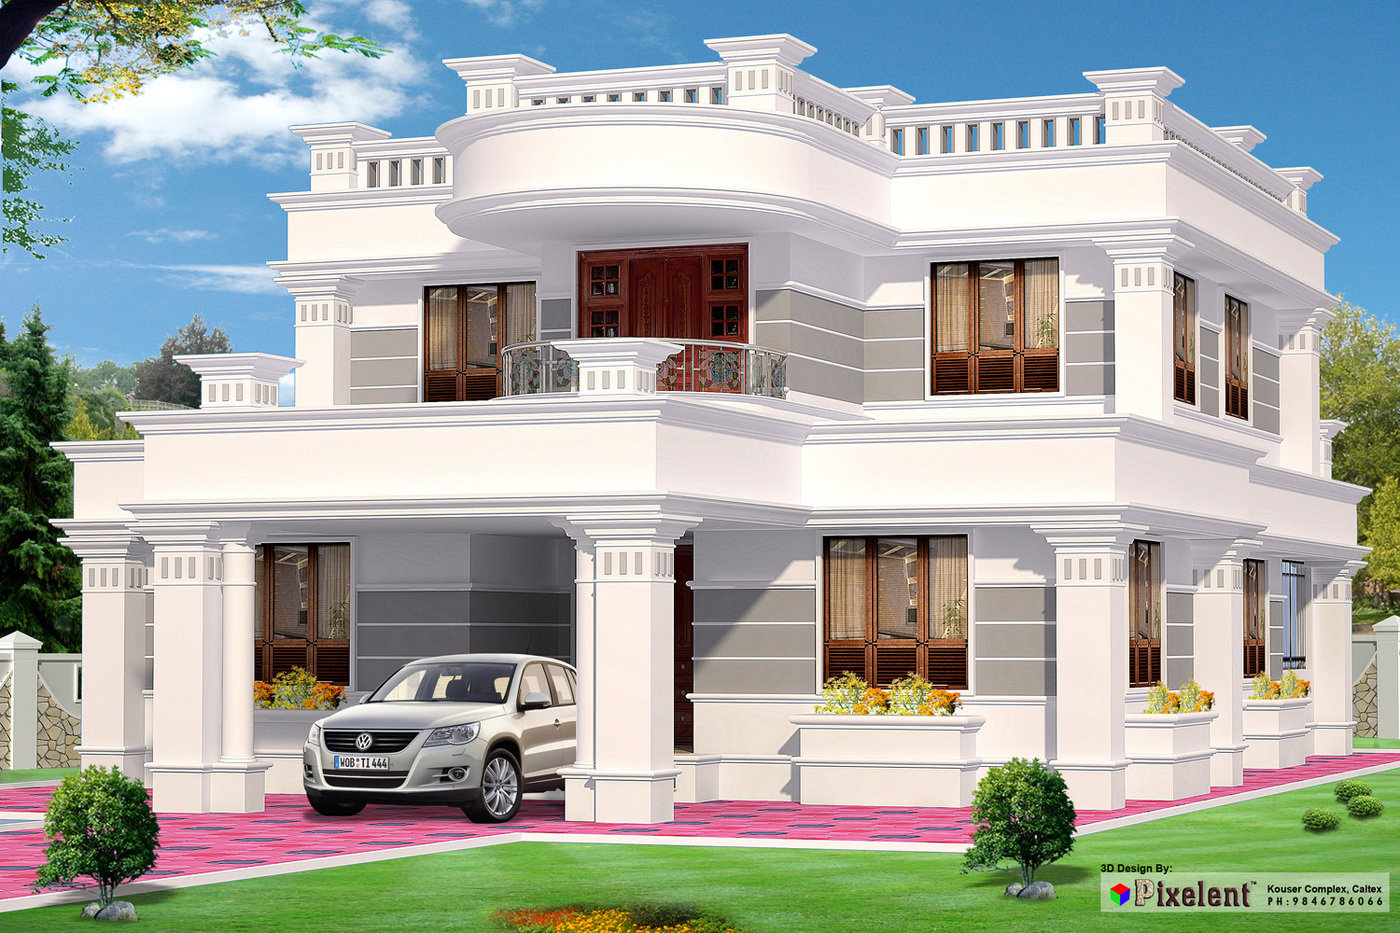 Residential Exterior Elevation Deisgns By Pixelent 3d Exterior Elevation Interior Design